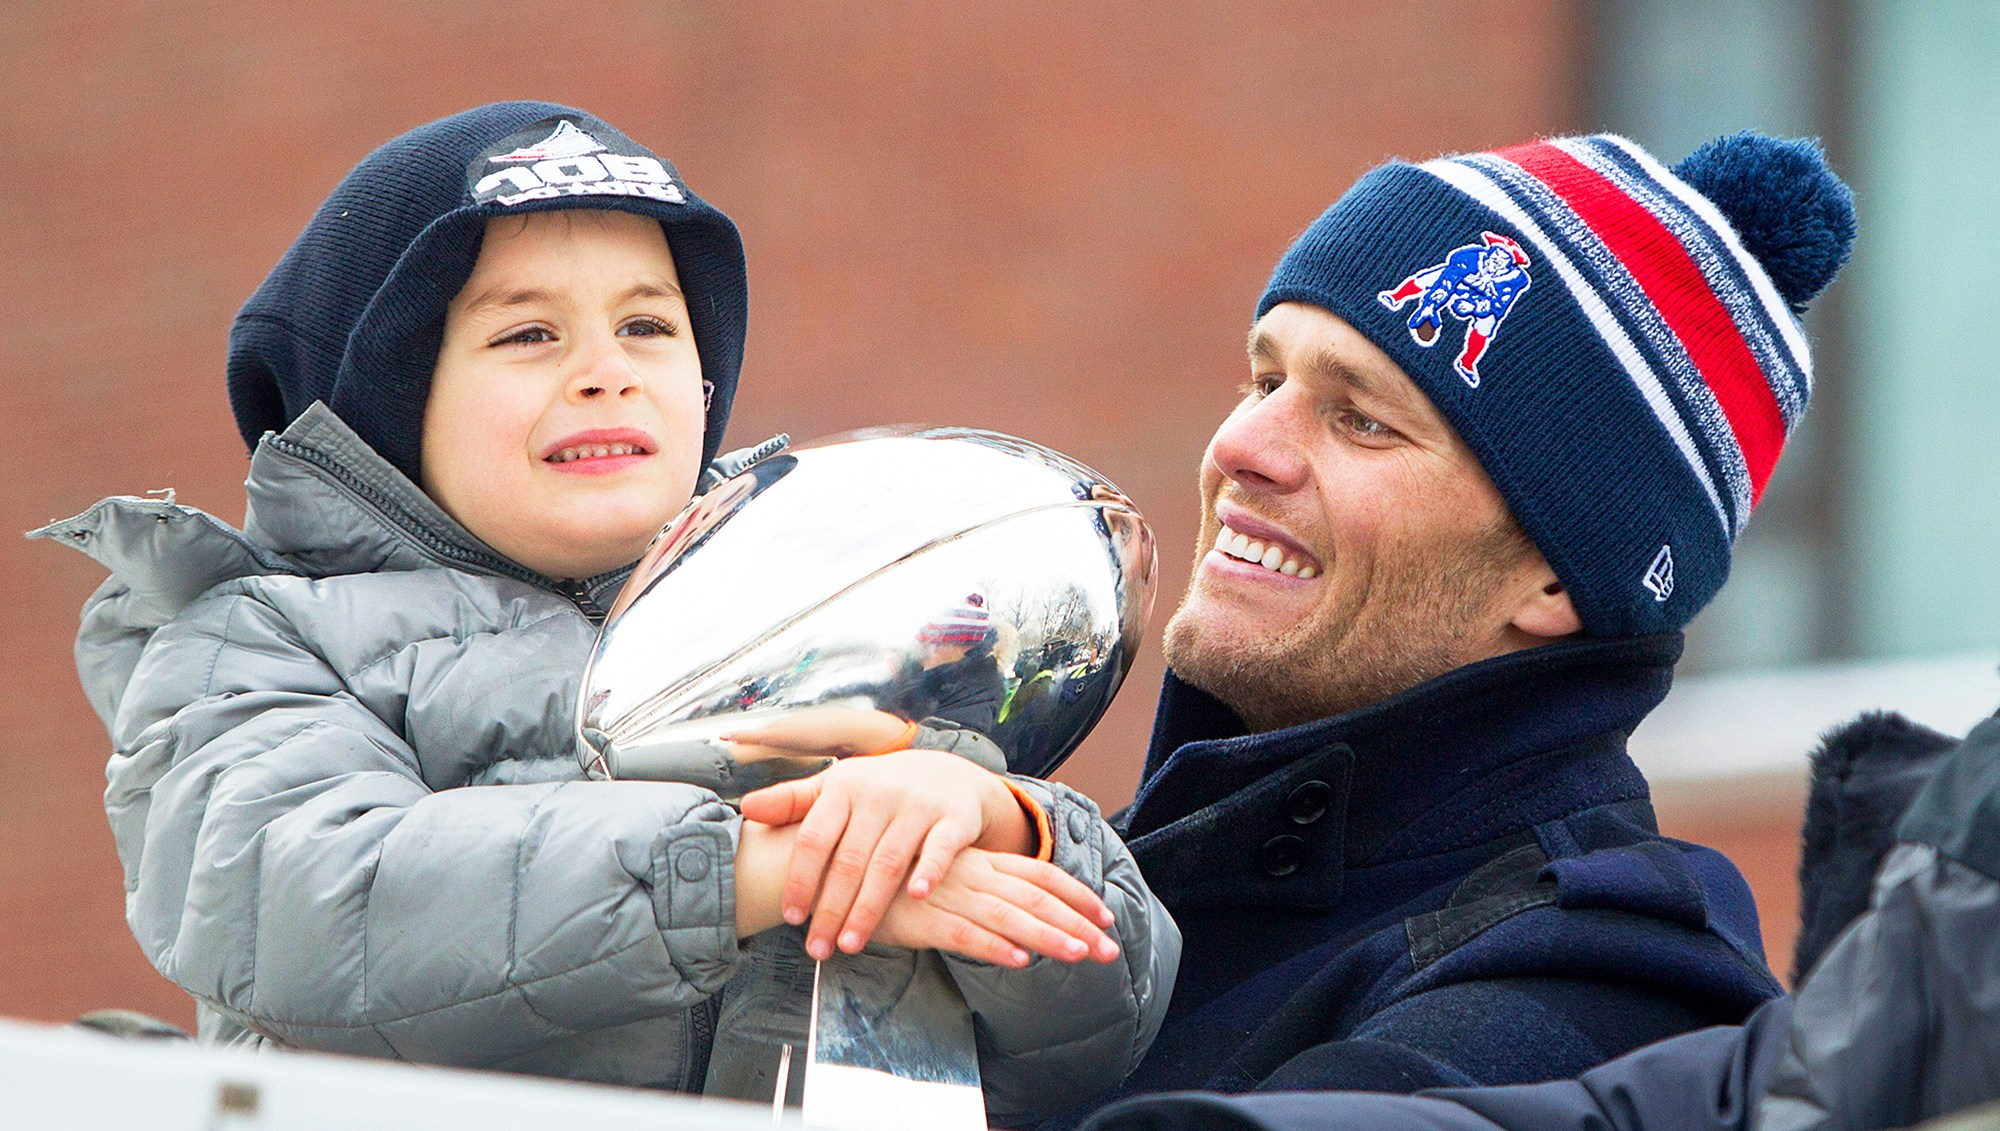 Tom Brady and son Benjamin holds the Lombardi trophy during the New England Patriots Victory 2015 Parade in Boston, Massachusetts.